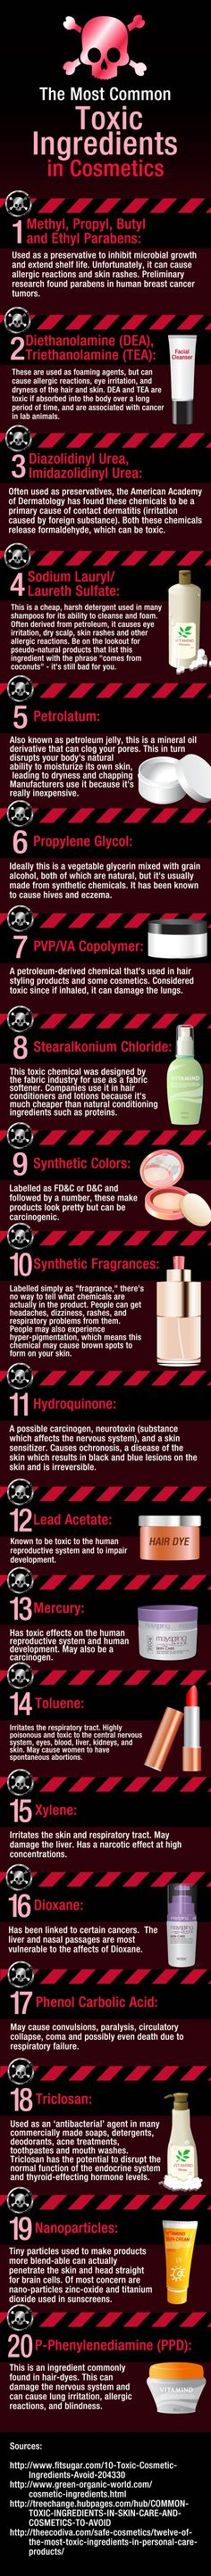 Interesantisima información! Aprende sobre los Ingredintes Tóxicos más comunes en cosméticos (The Most Common Toxic Ingredients in Cosmetics)